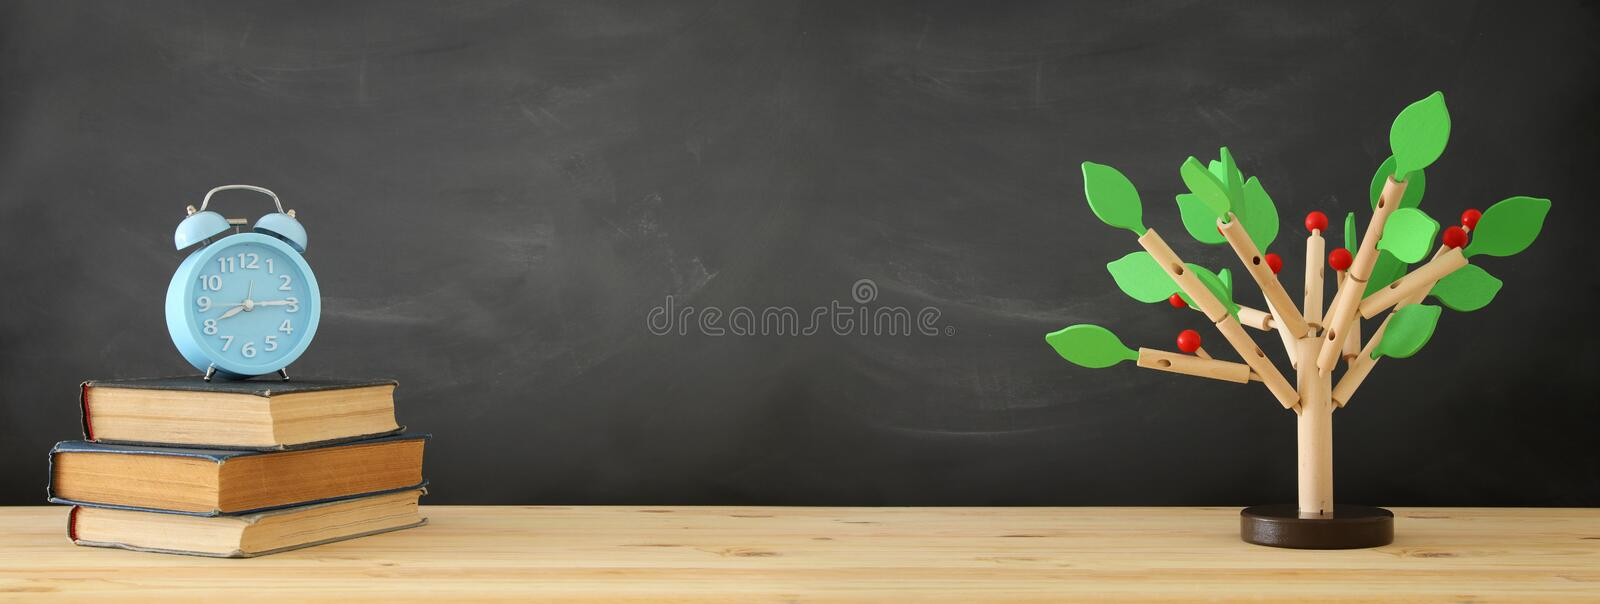 banner of open book and wooden tree puzzle over blackboard background. education and knowledge concept. royalty free stock photos